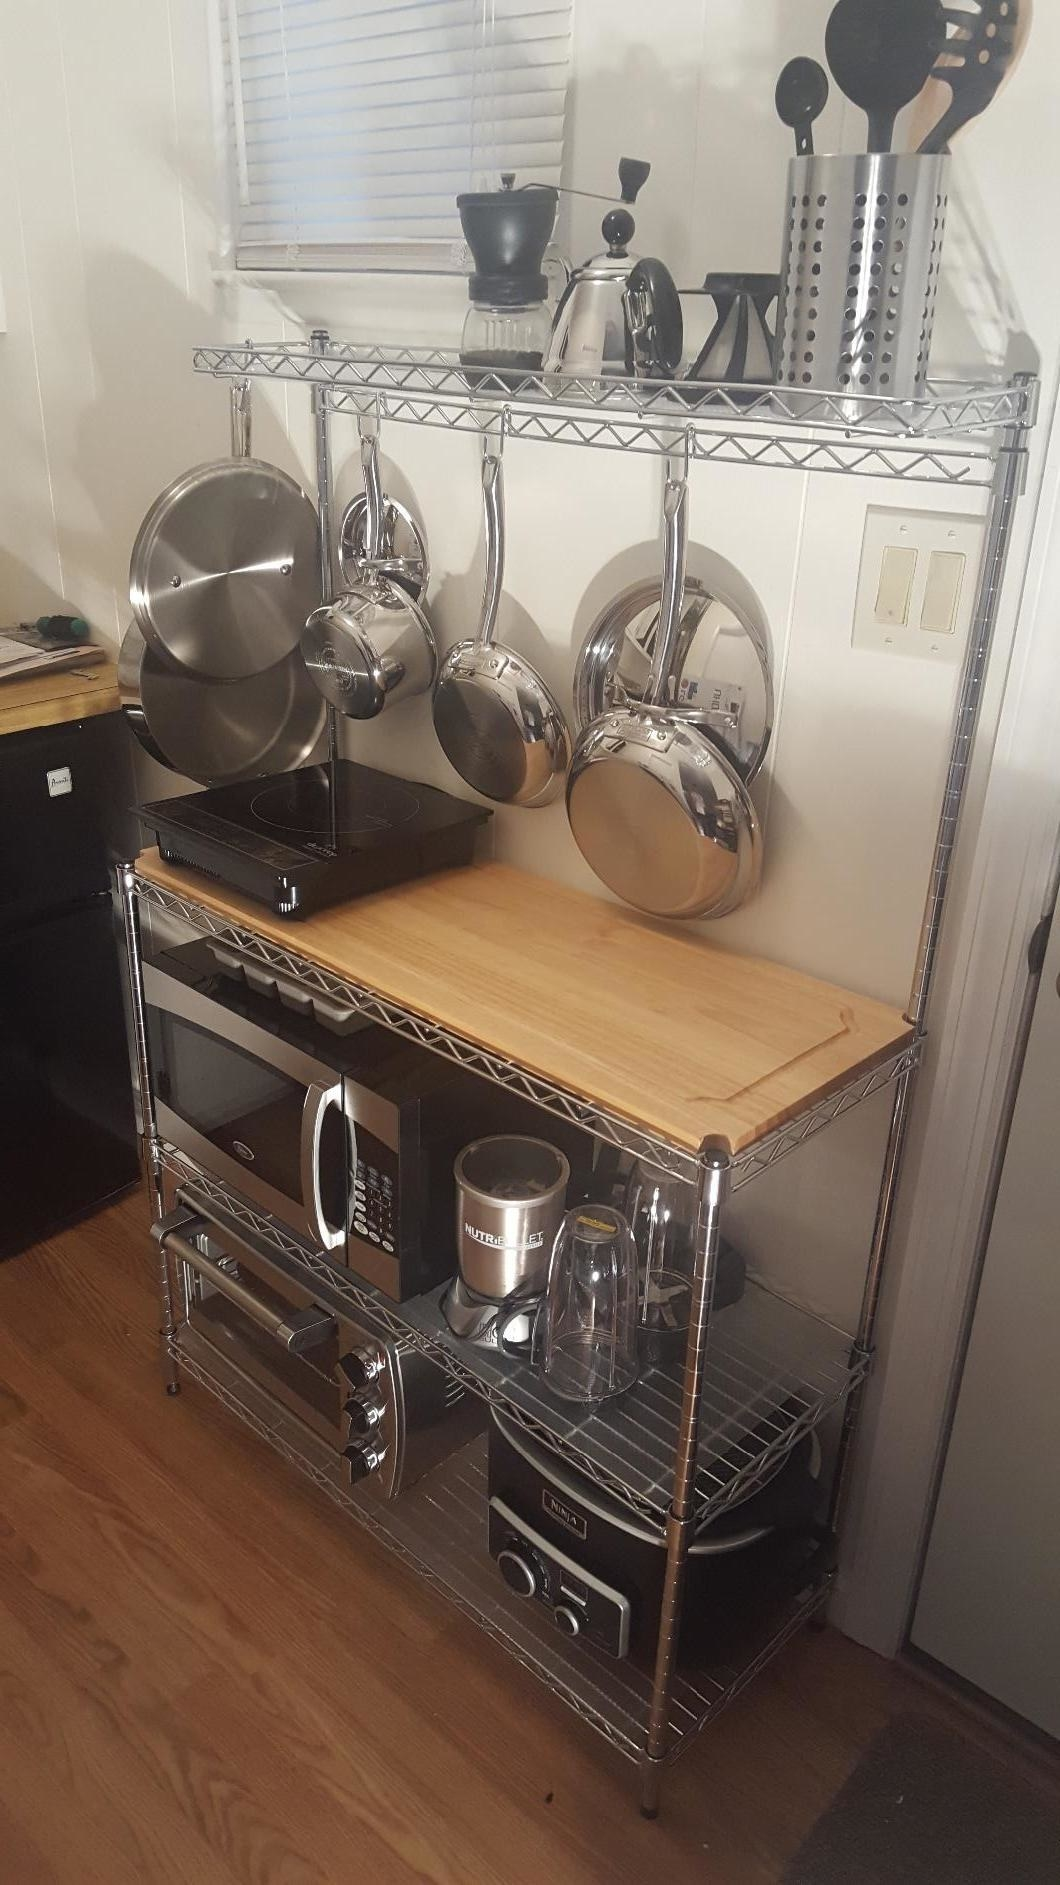 The baker's rack with a microwave, convection oven, and multiple frying pans stored on it